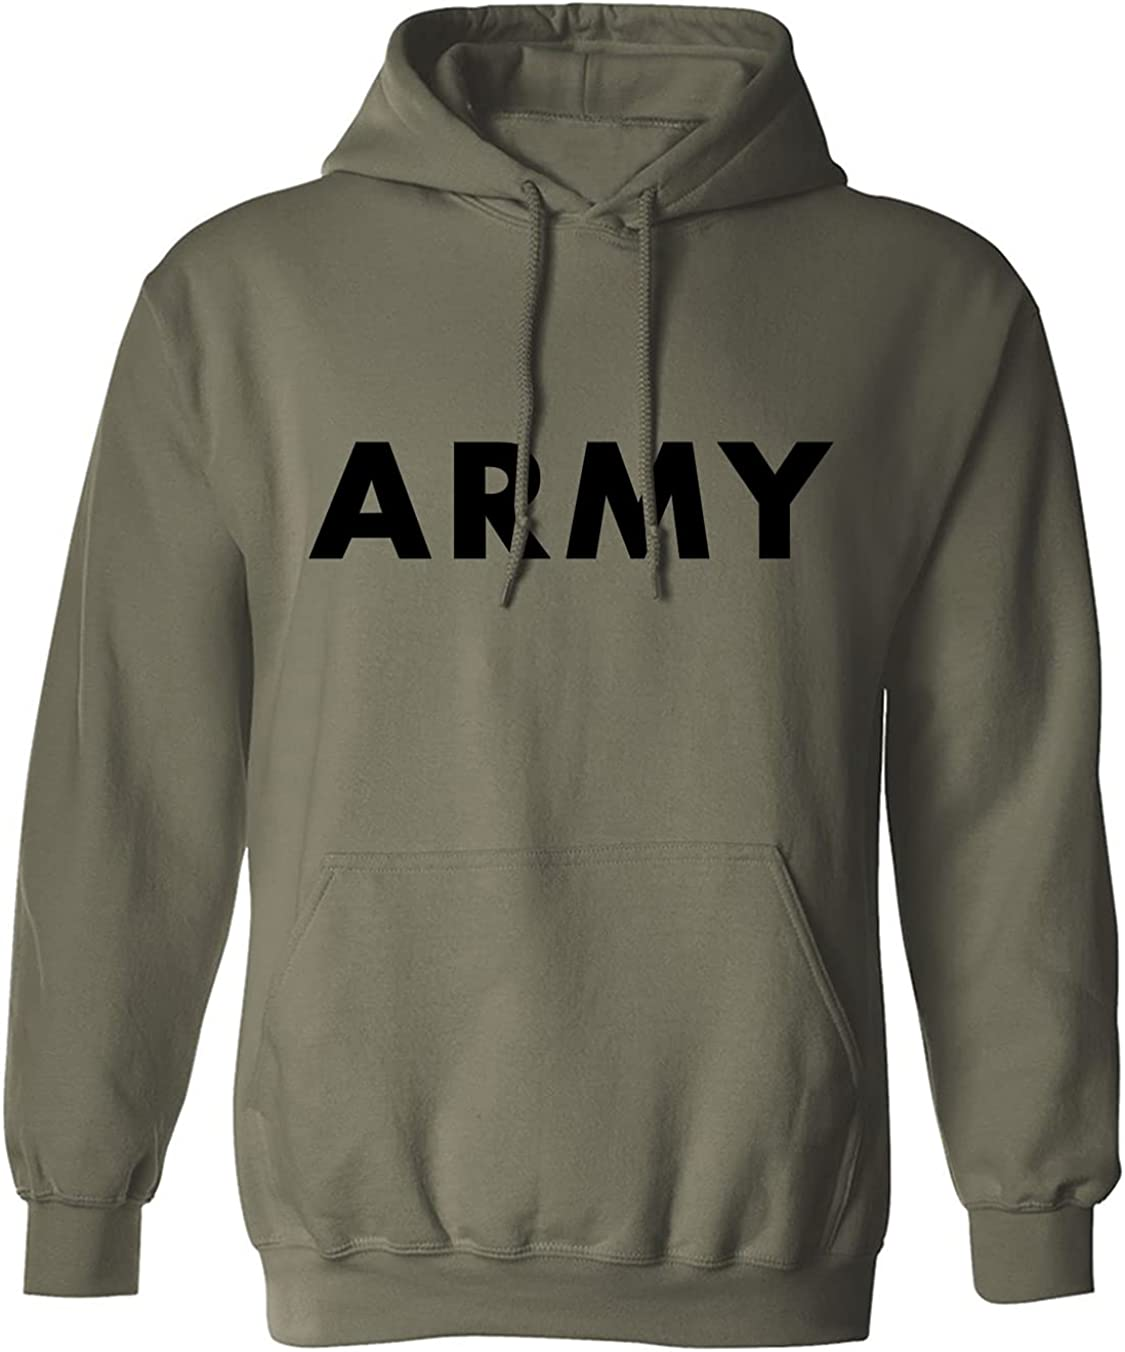 Army Hooded Sweatshirt Military Green Ranking TOP15 Japan's largest assortment in